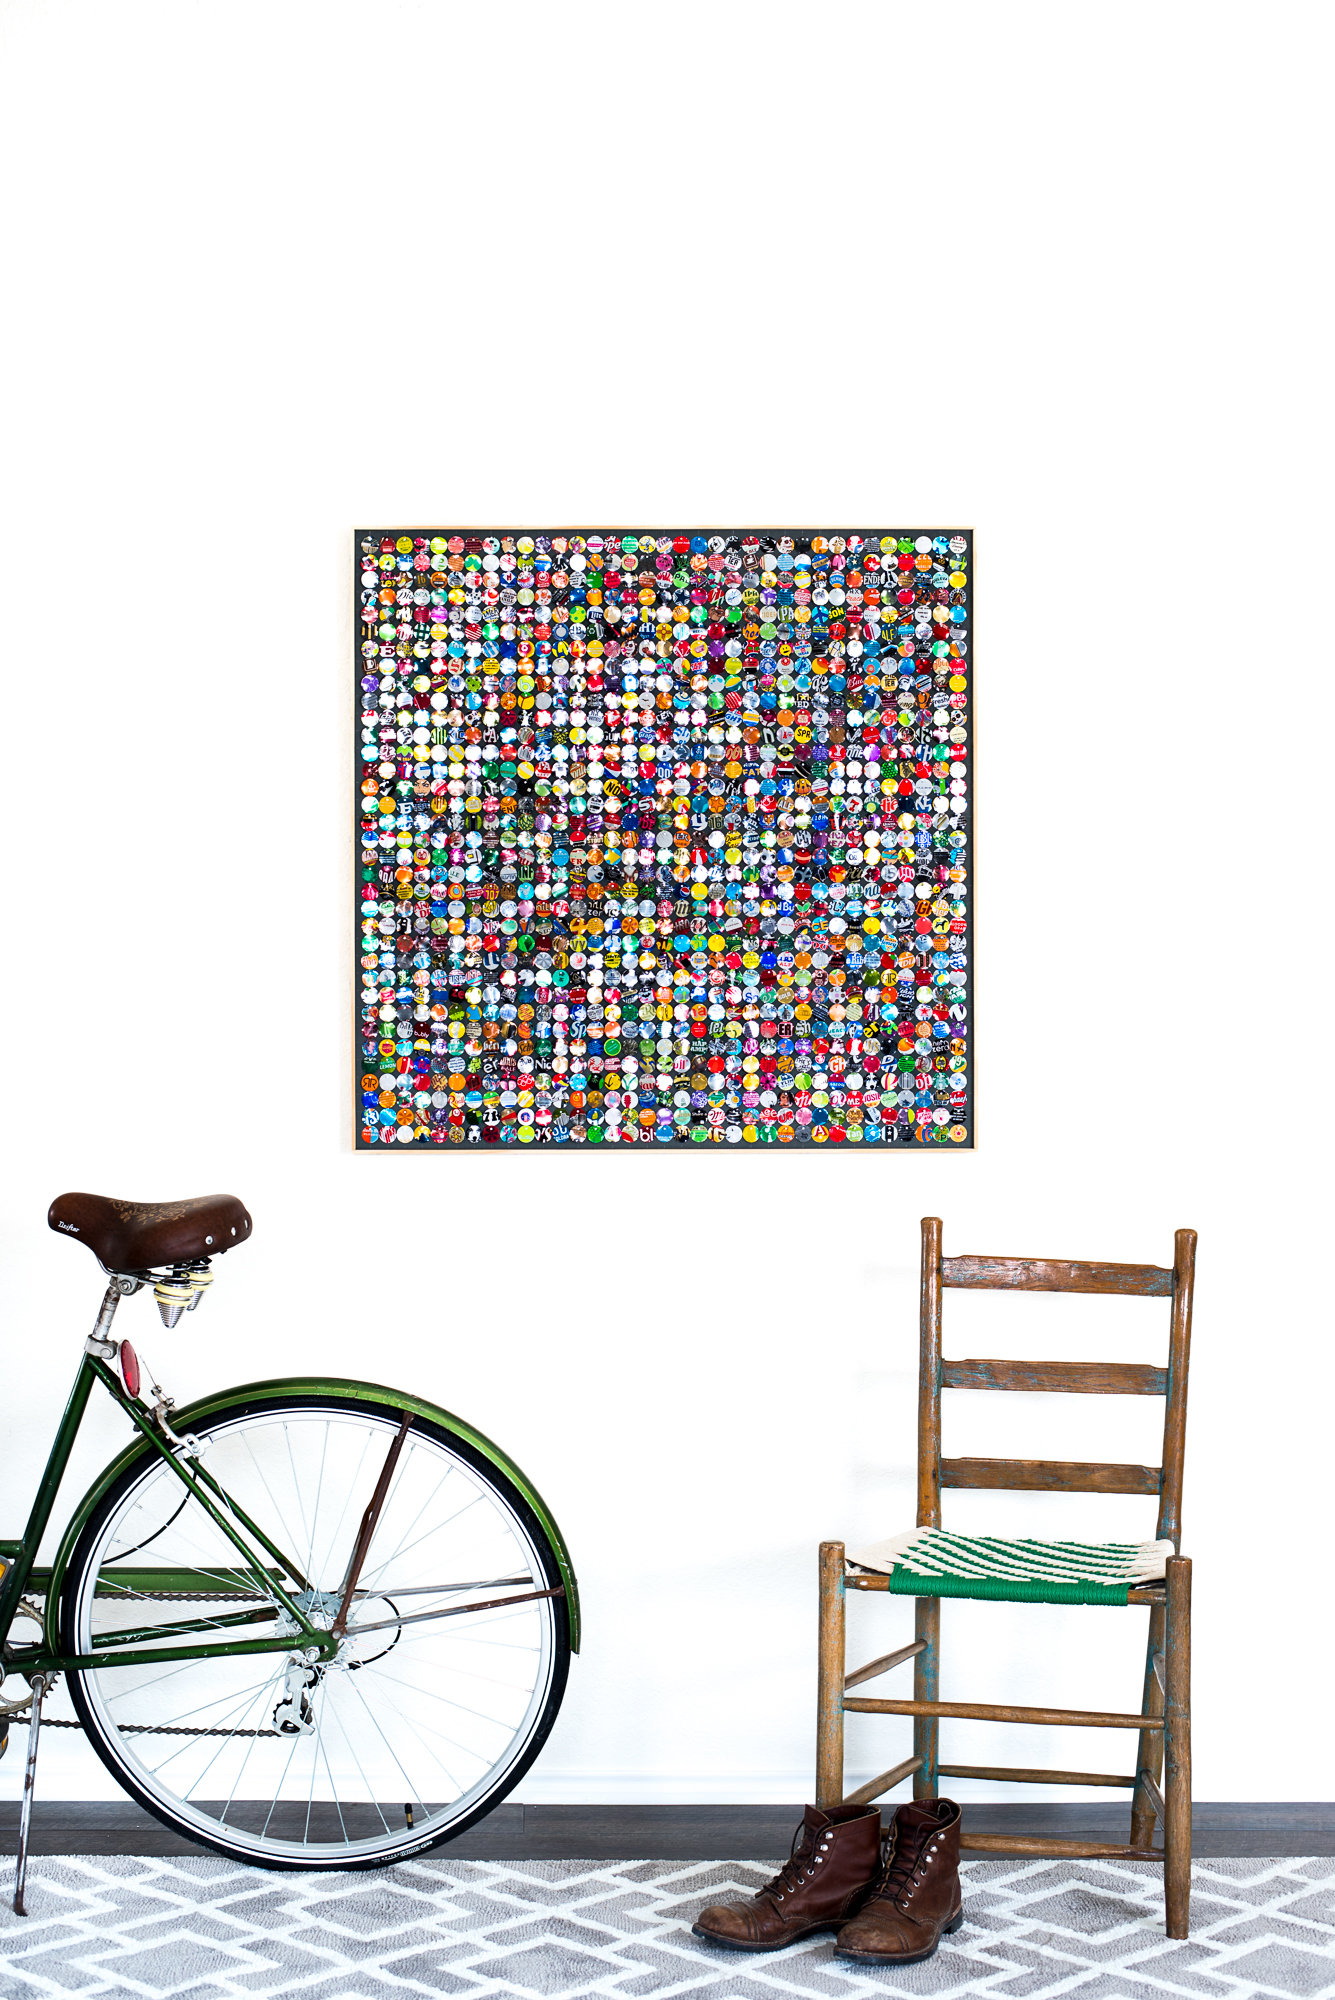 hannah-nemo-beer-can-recycled-moving-mosaic-chair-boots-bicycle-single-36x36.jpg